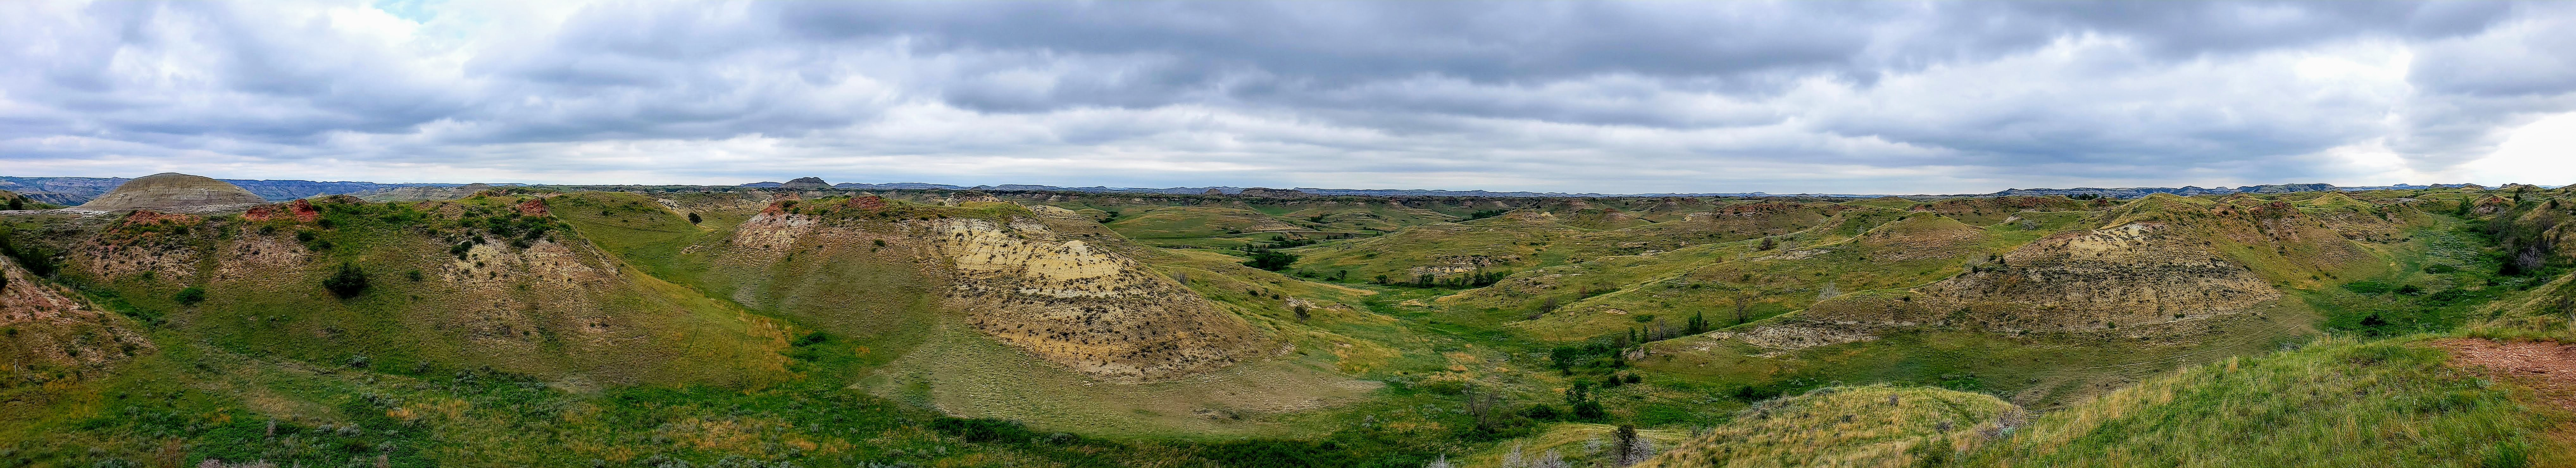 Theodore Roosevelt National Park, ND, USA – 2 Day Trip